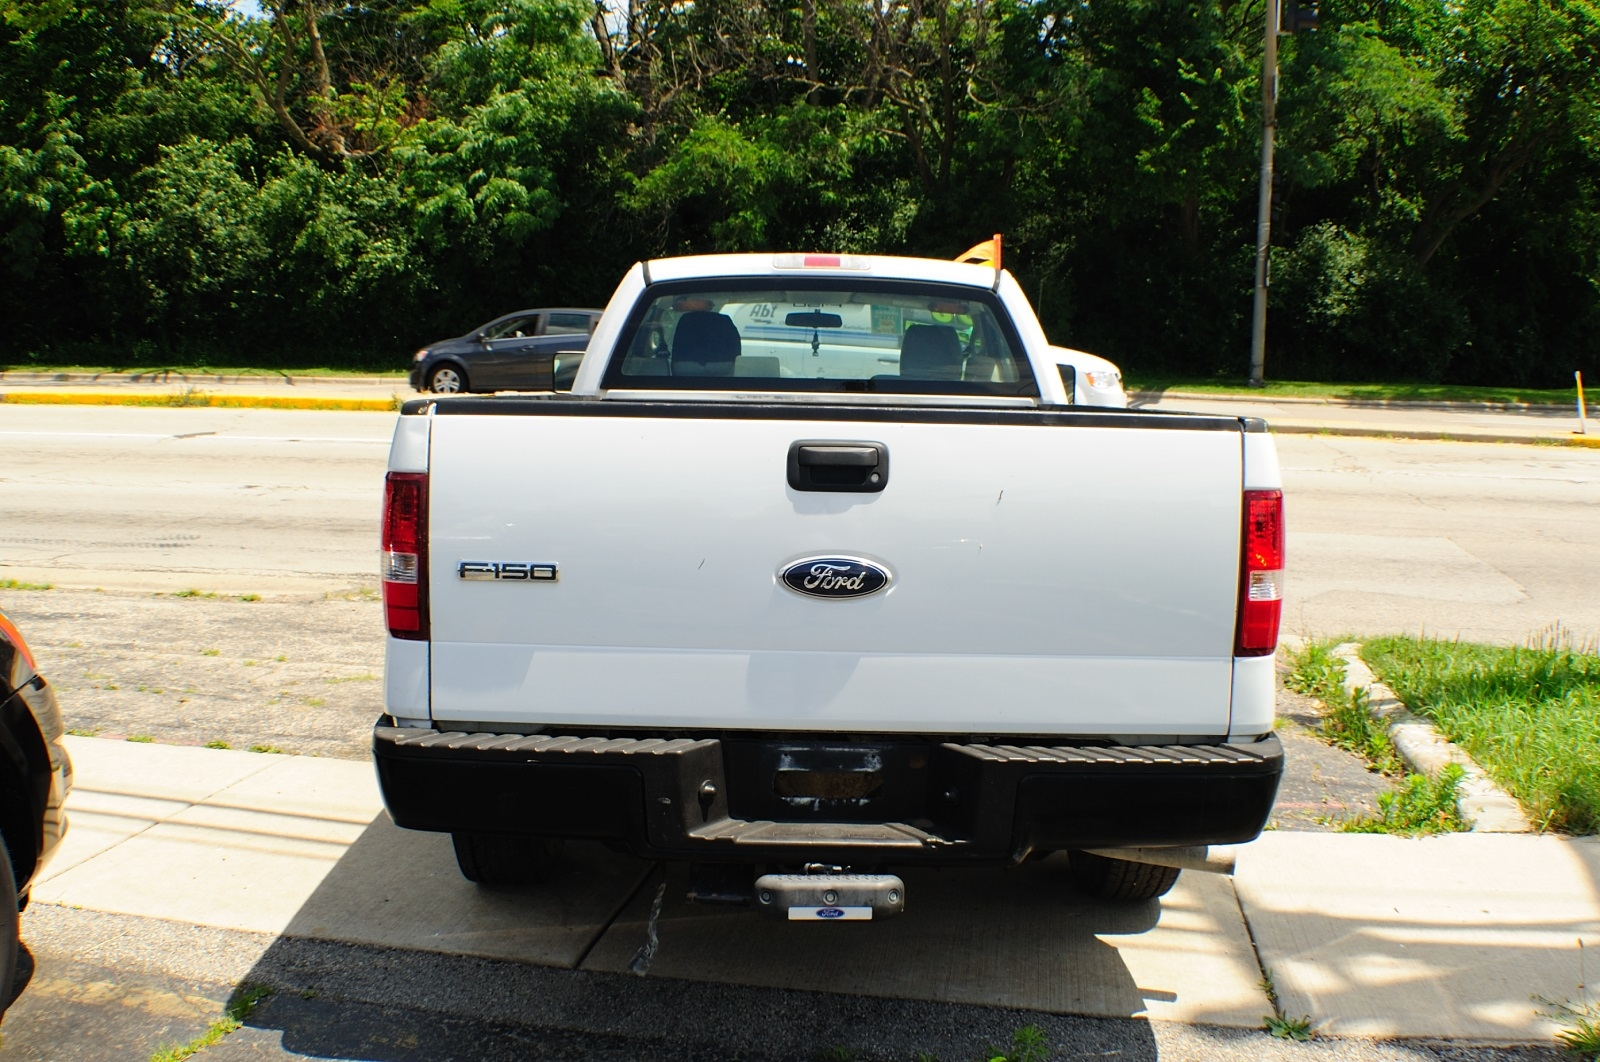 2006 Ford F150 White Ext Cab 4x2 Used Pickup Truck Sale Gurnee Hanover Park Hoffman Estates Lombard